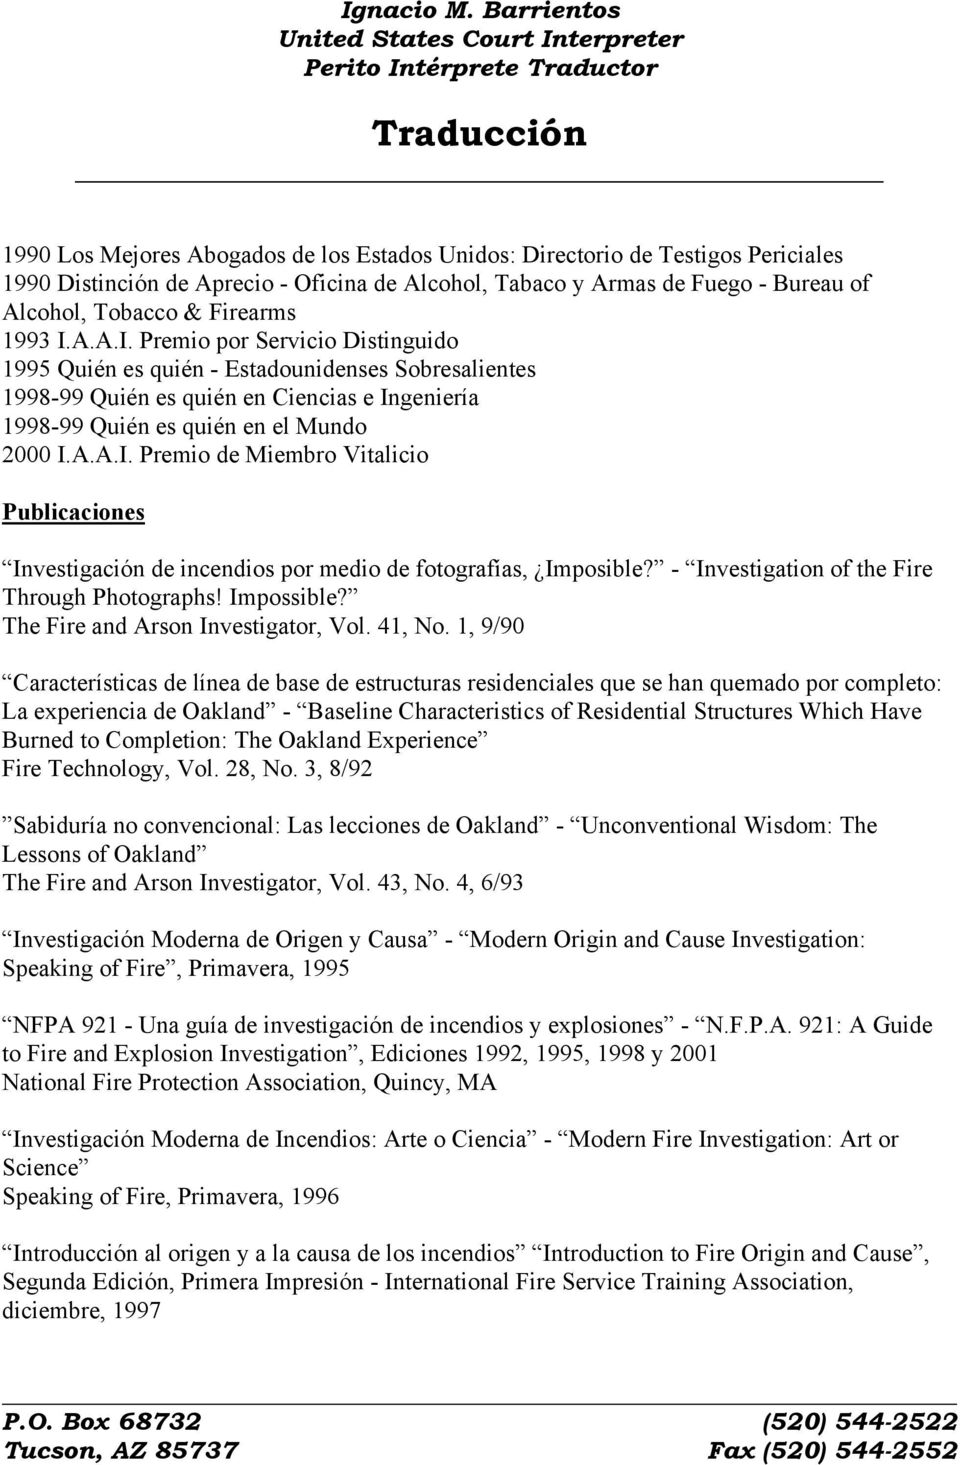 - Investigation of the Fire Through Photographs! Impossible? The Fire and Arson Investigator, Vol. 41, No.